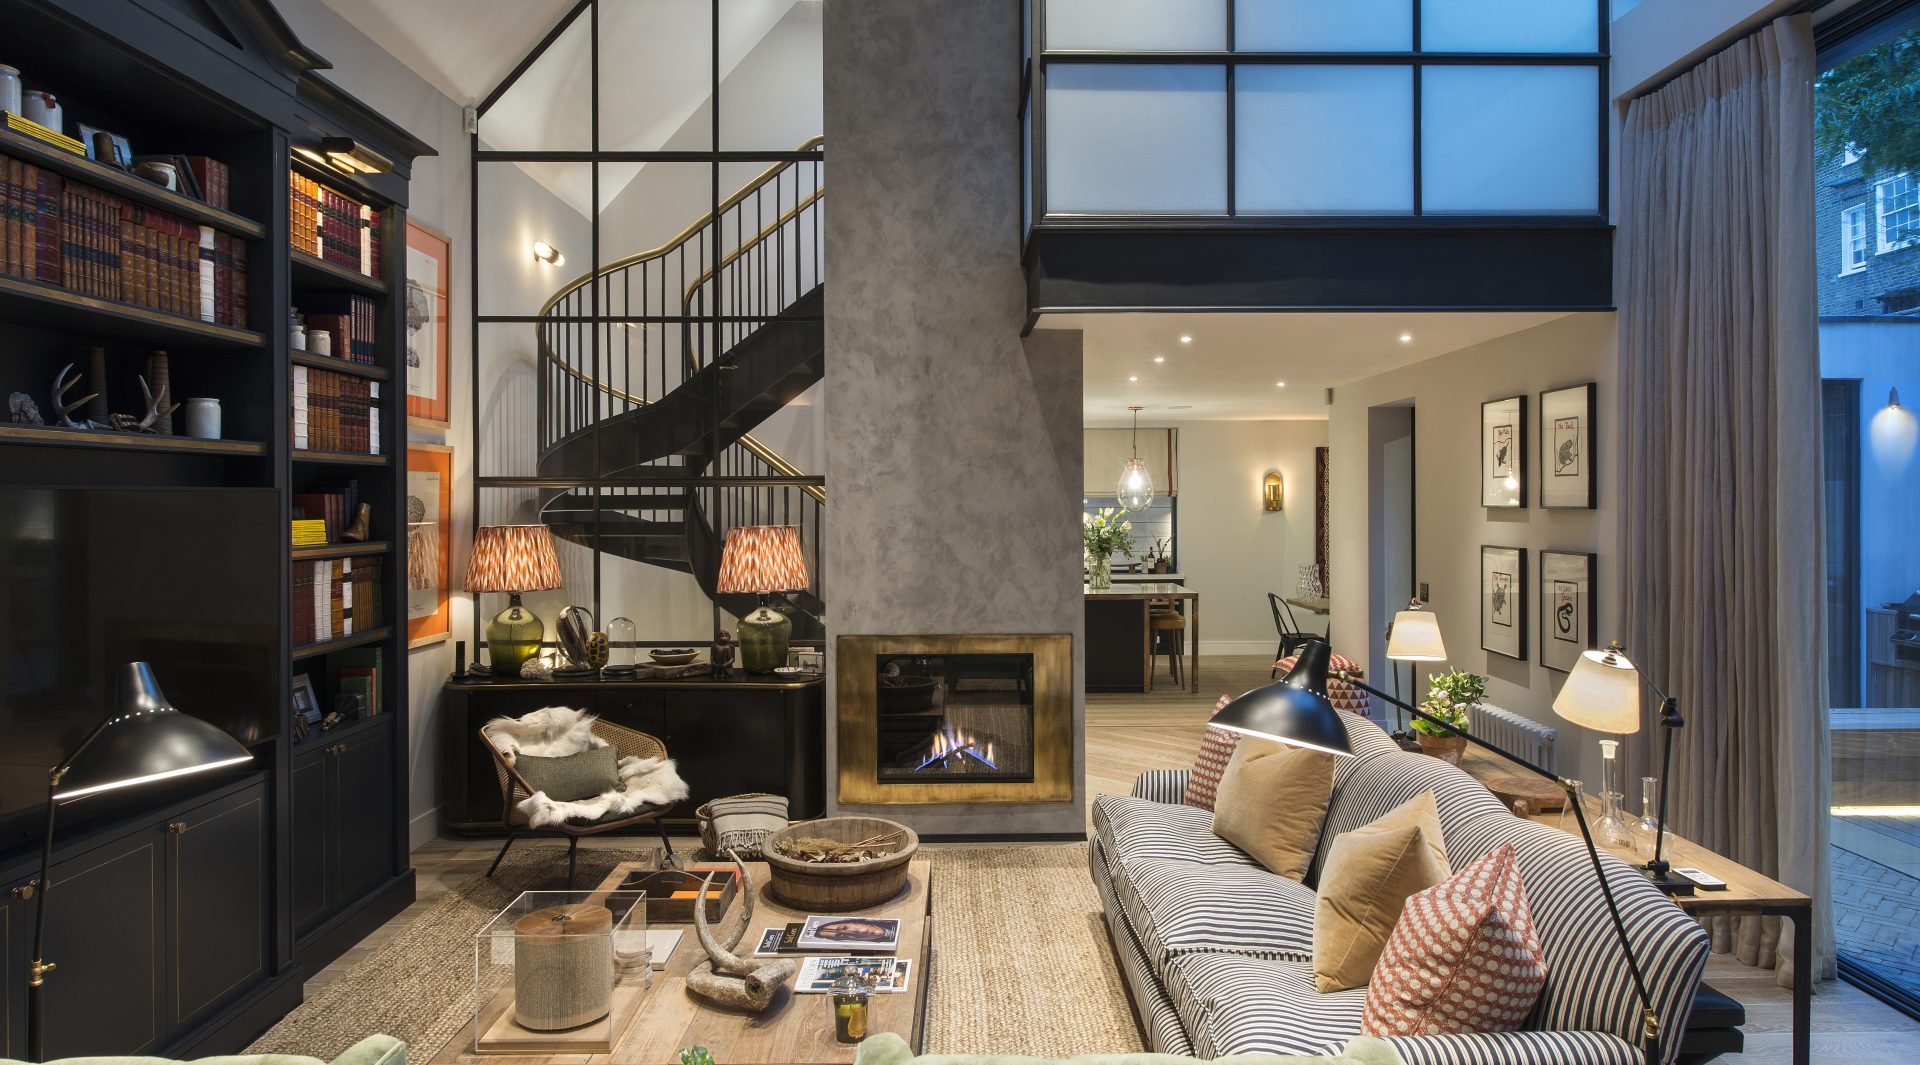 World Best Home Interior Design Inside Awards 2013 Day Two Winners Announced